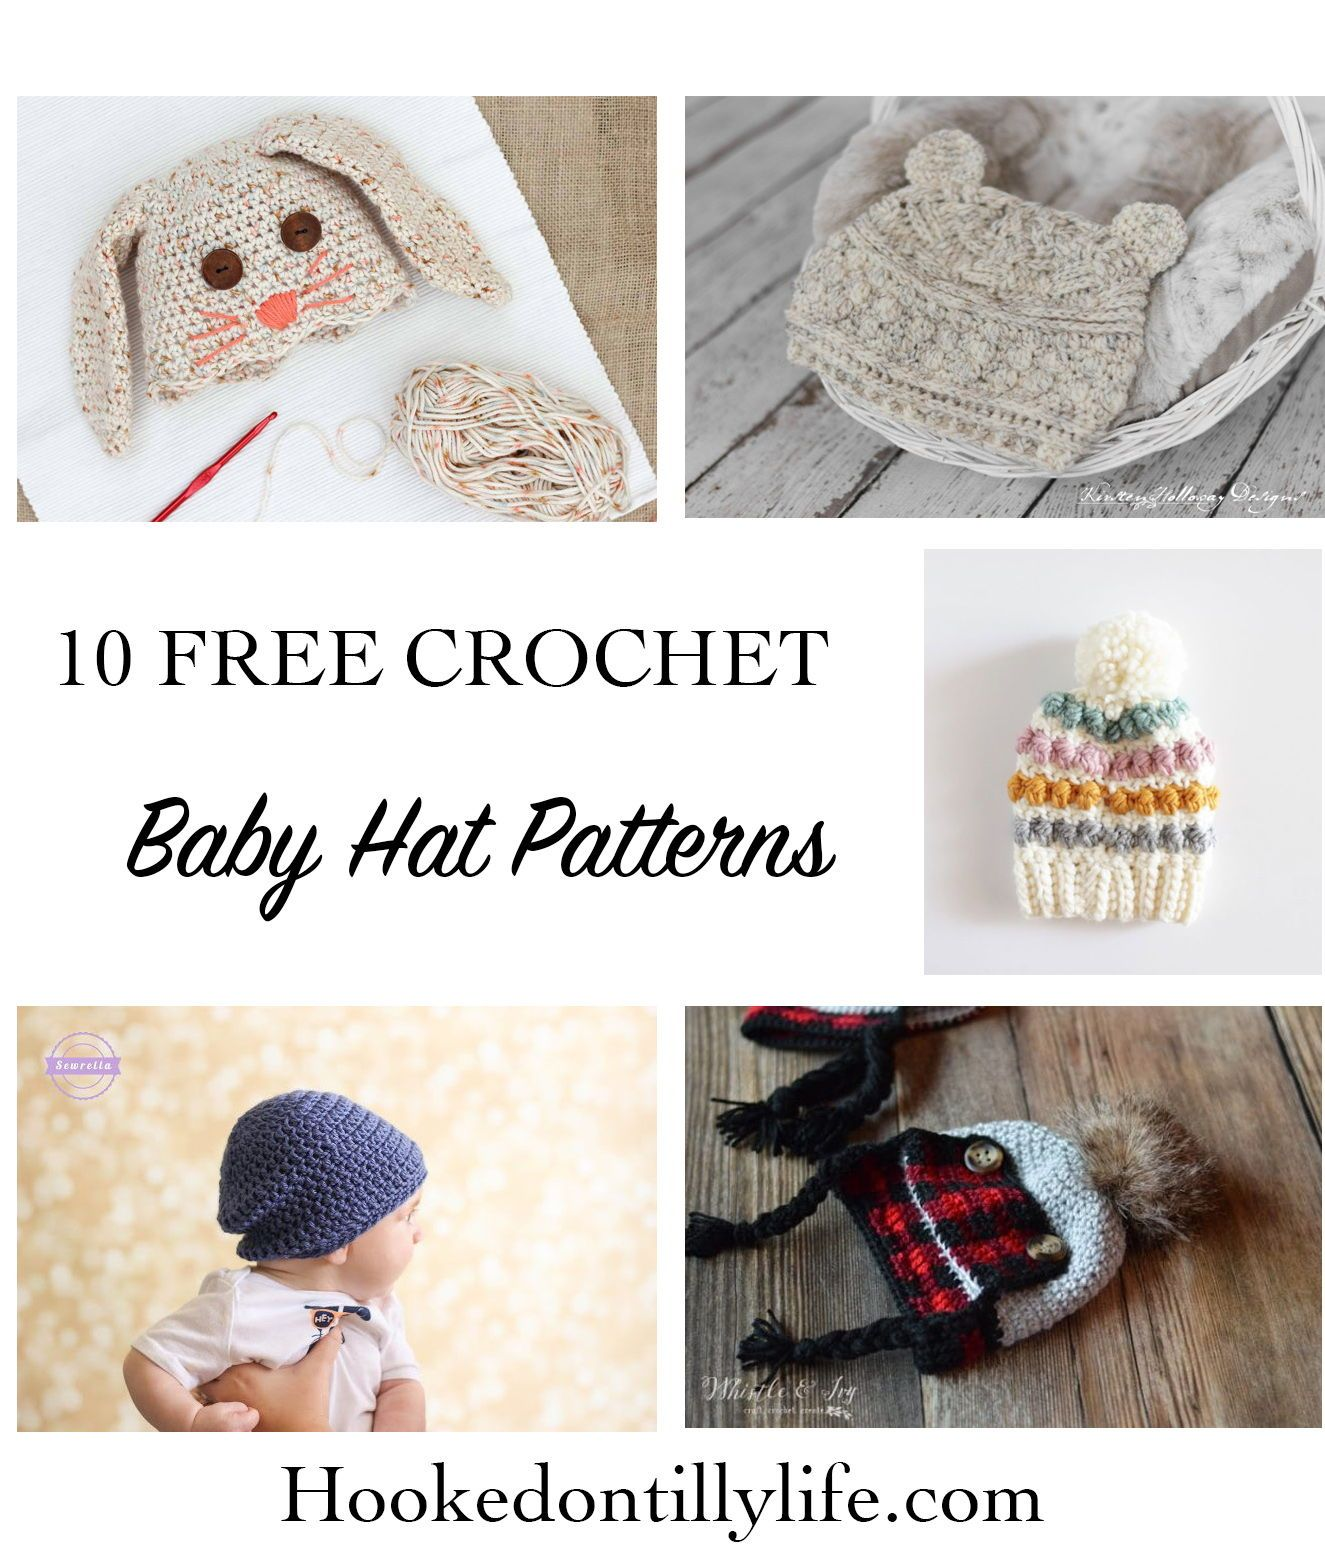 75c3be2c0 10 FREE Baby Hat Patterns - Crochet Roundup | Rustic Stitches ...